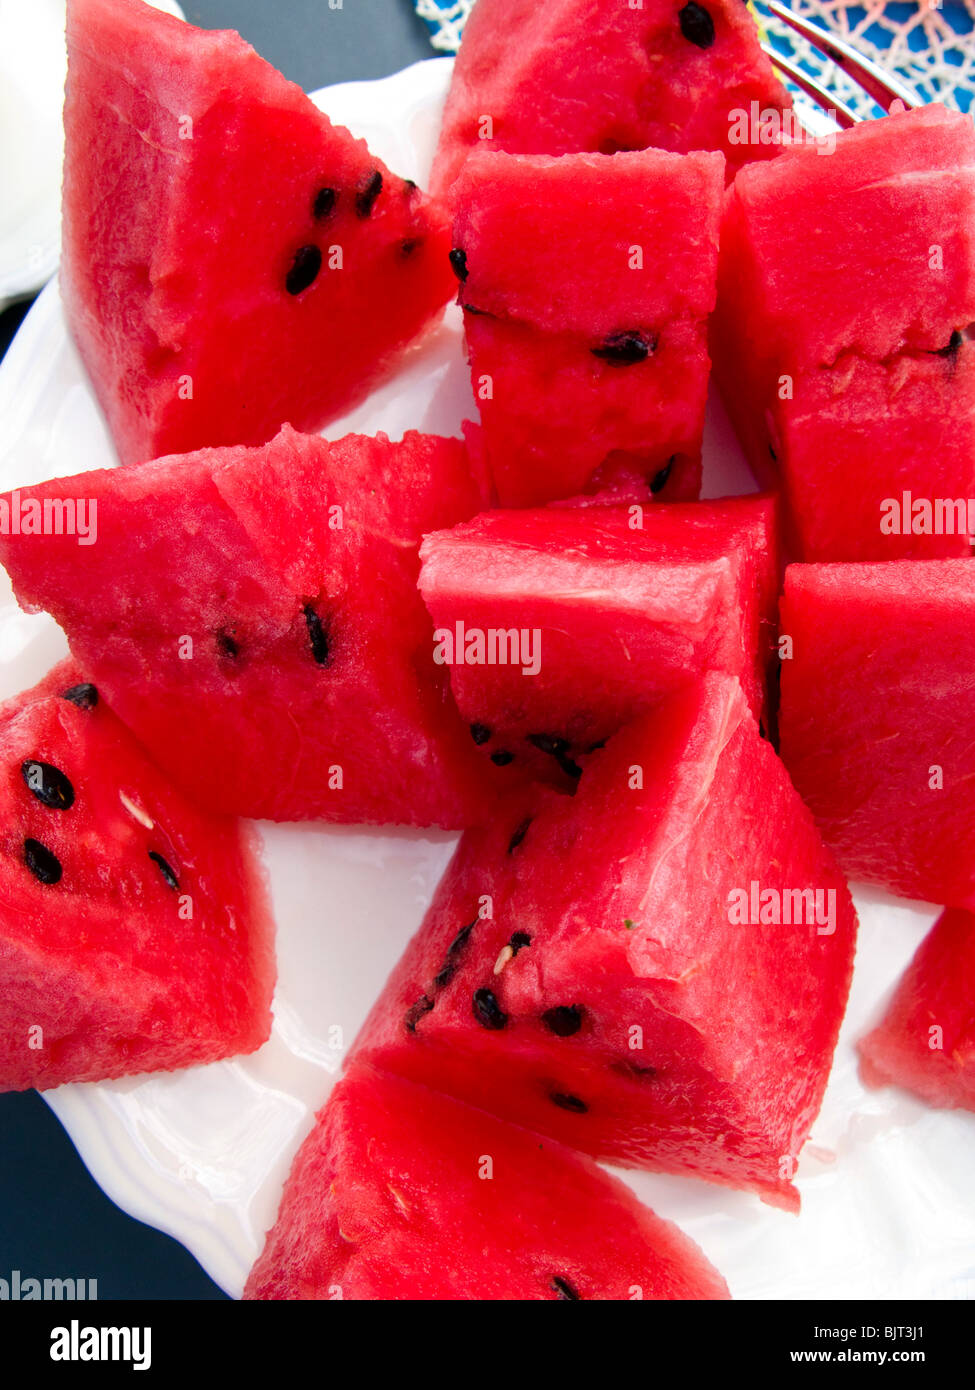 Water Melon fruit on plate - Stock Image